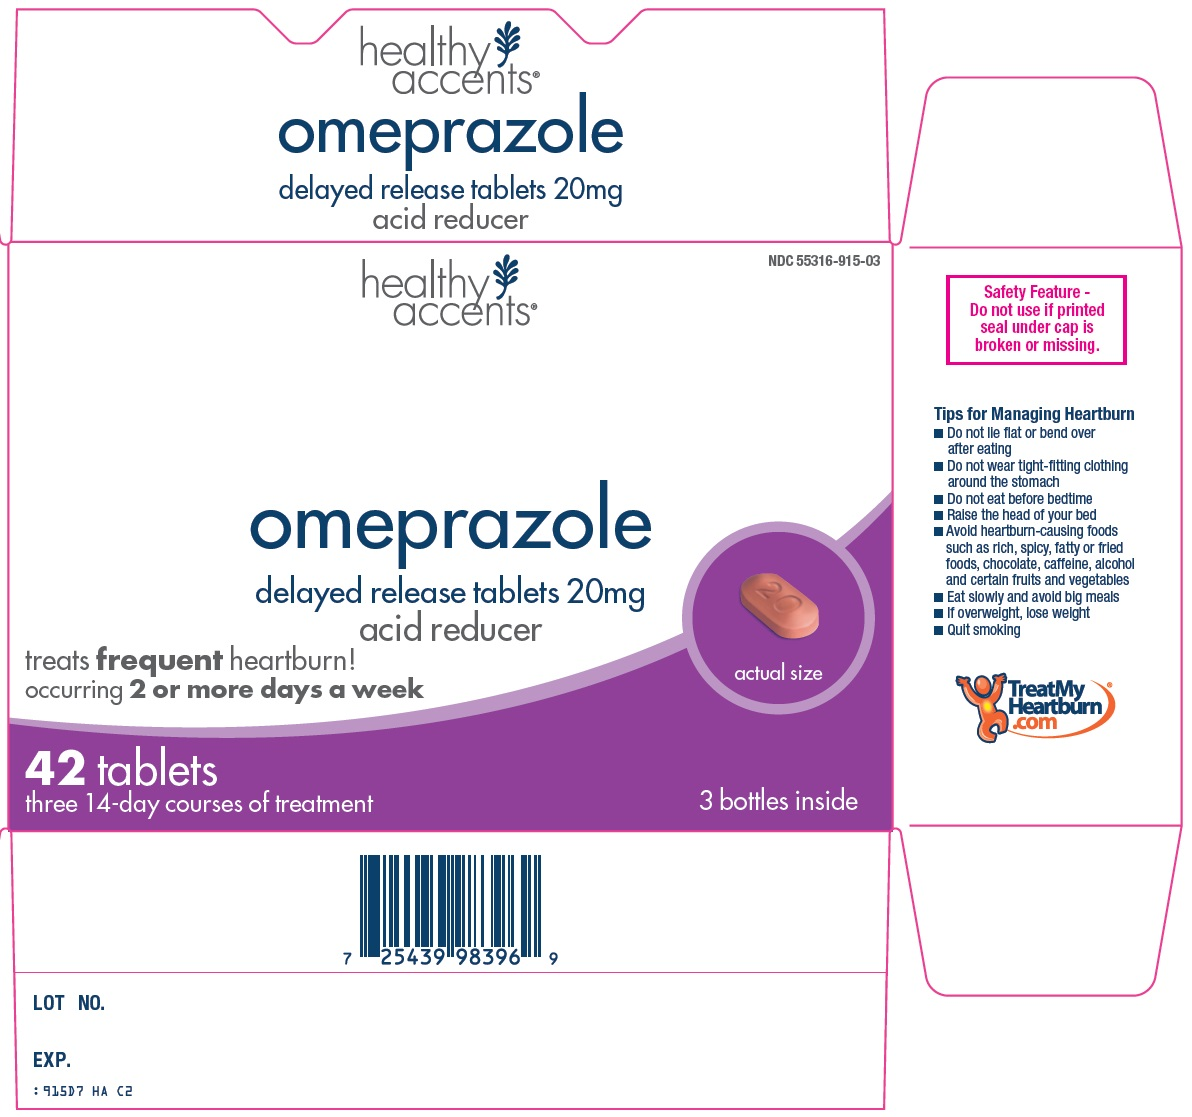 Healthy Accents Omeprazole Image 1